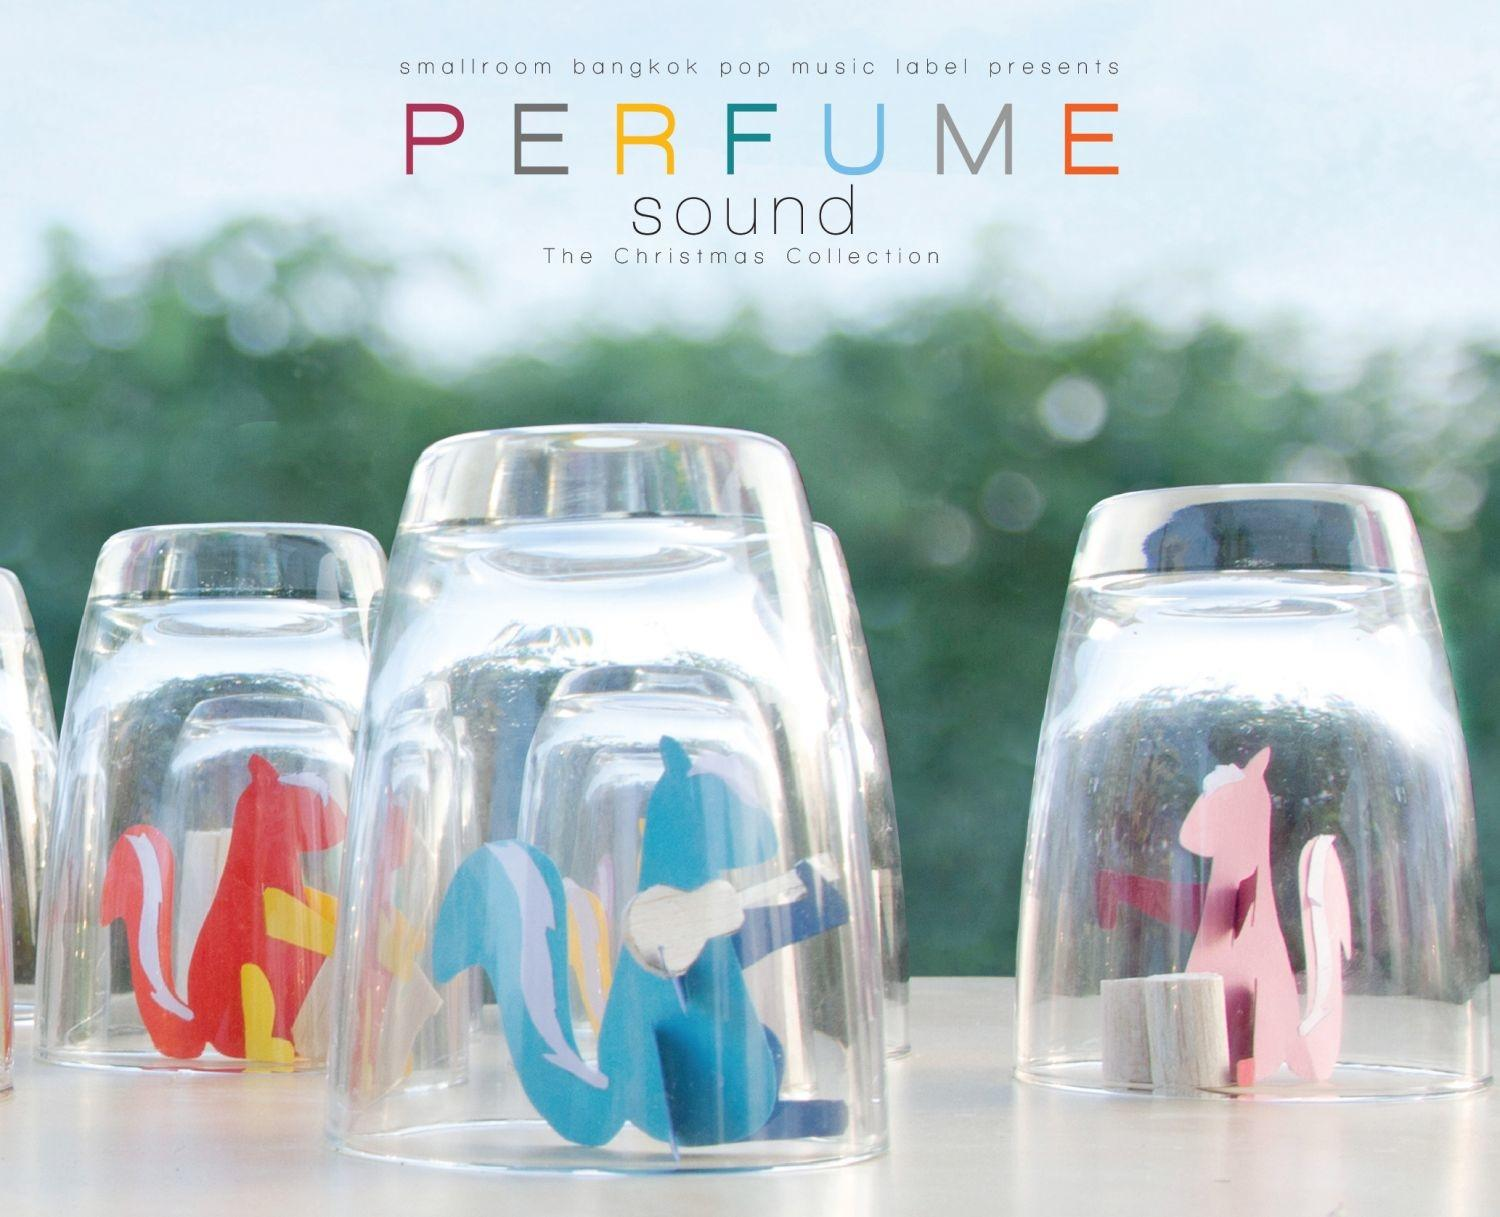 CD-PERFUME SOUND / VARIOUS